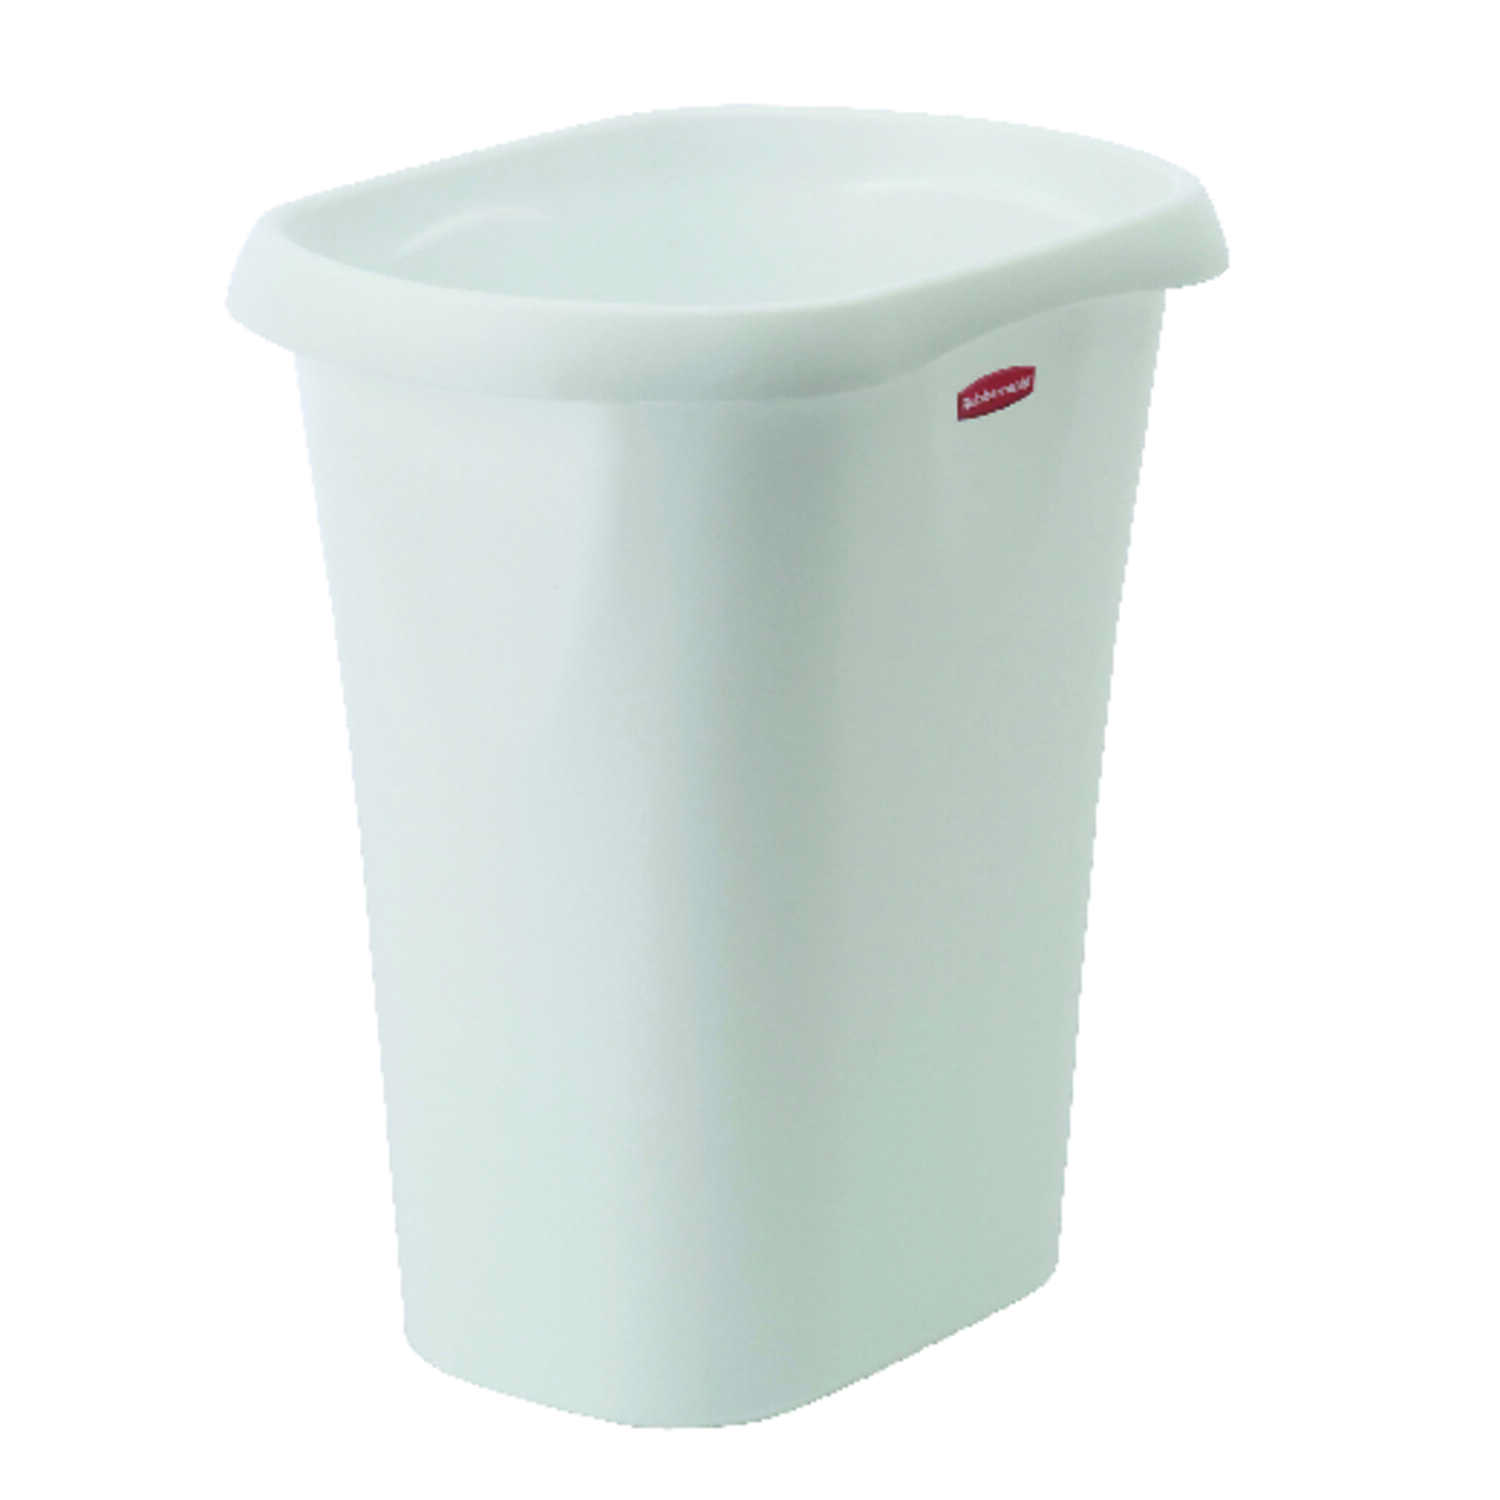 Rubbermaid  White  Open Top  Wastebasket  12 qt.